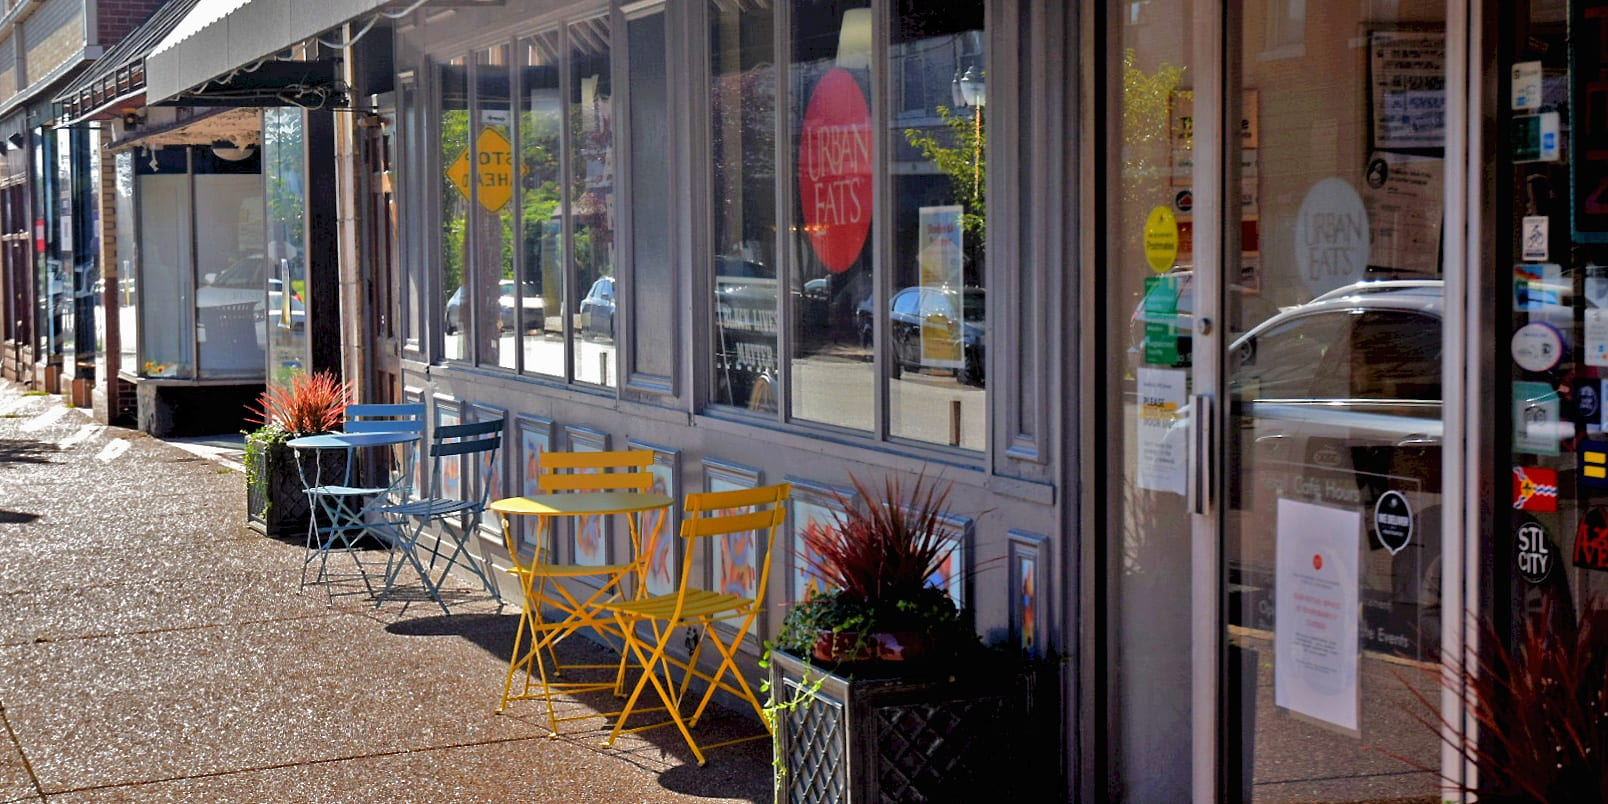 New sidewalk furniture in front of Urban Eats on Meramec Street in Downtown Dutchtown.